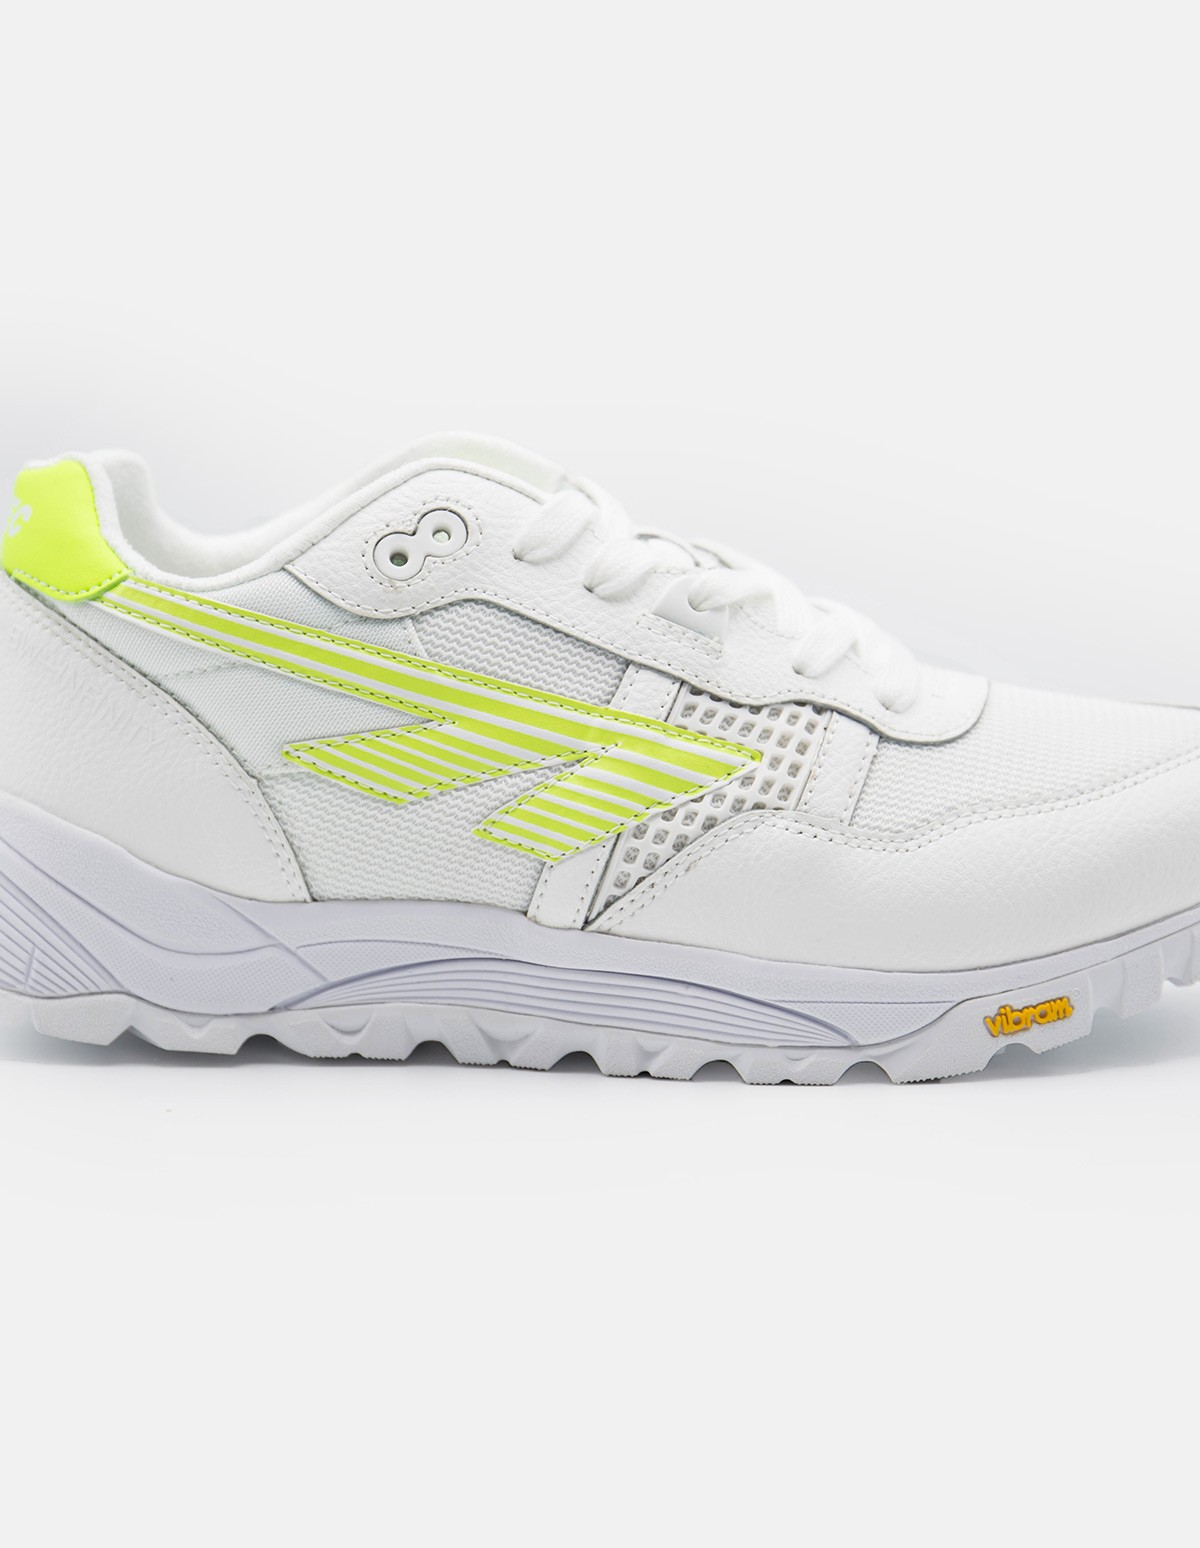 Hi-Tec HTS Badwater Infinity  in White Neon Yellow